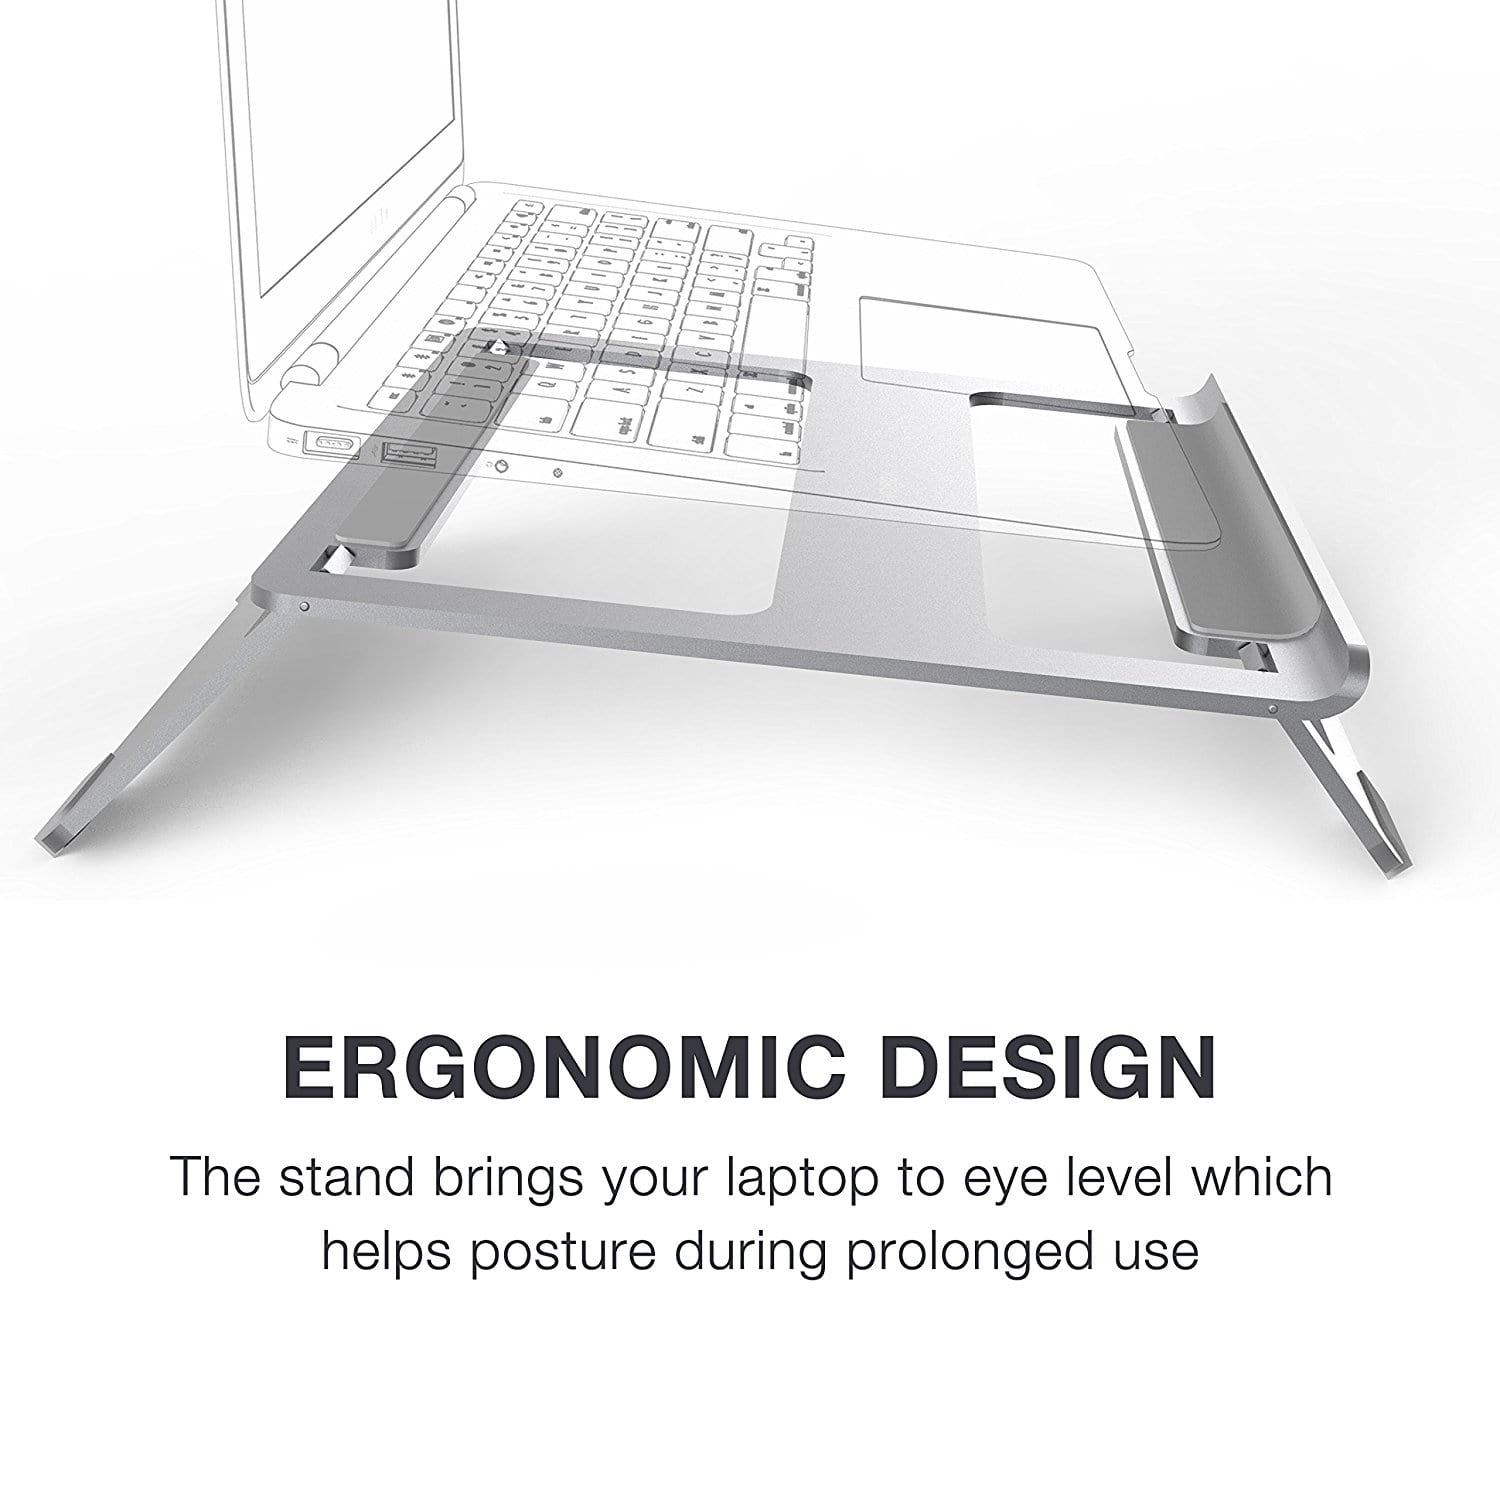 Vogek Laptop Stand Ergonomic Design